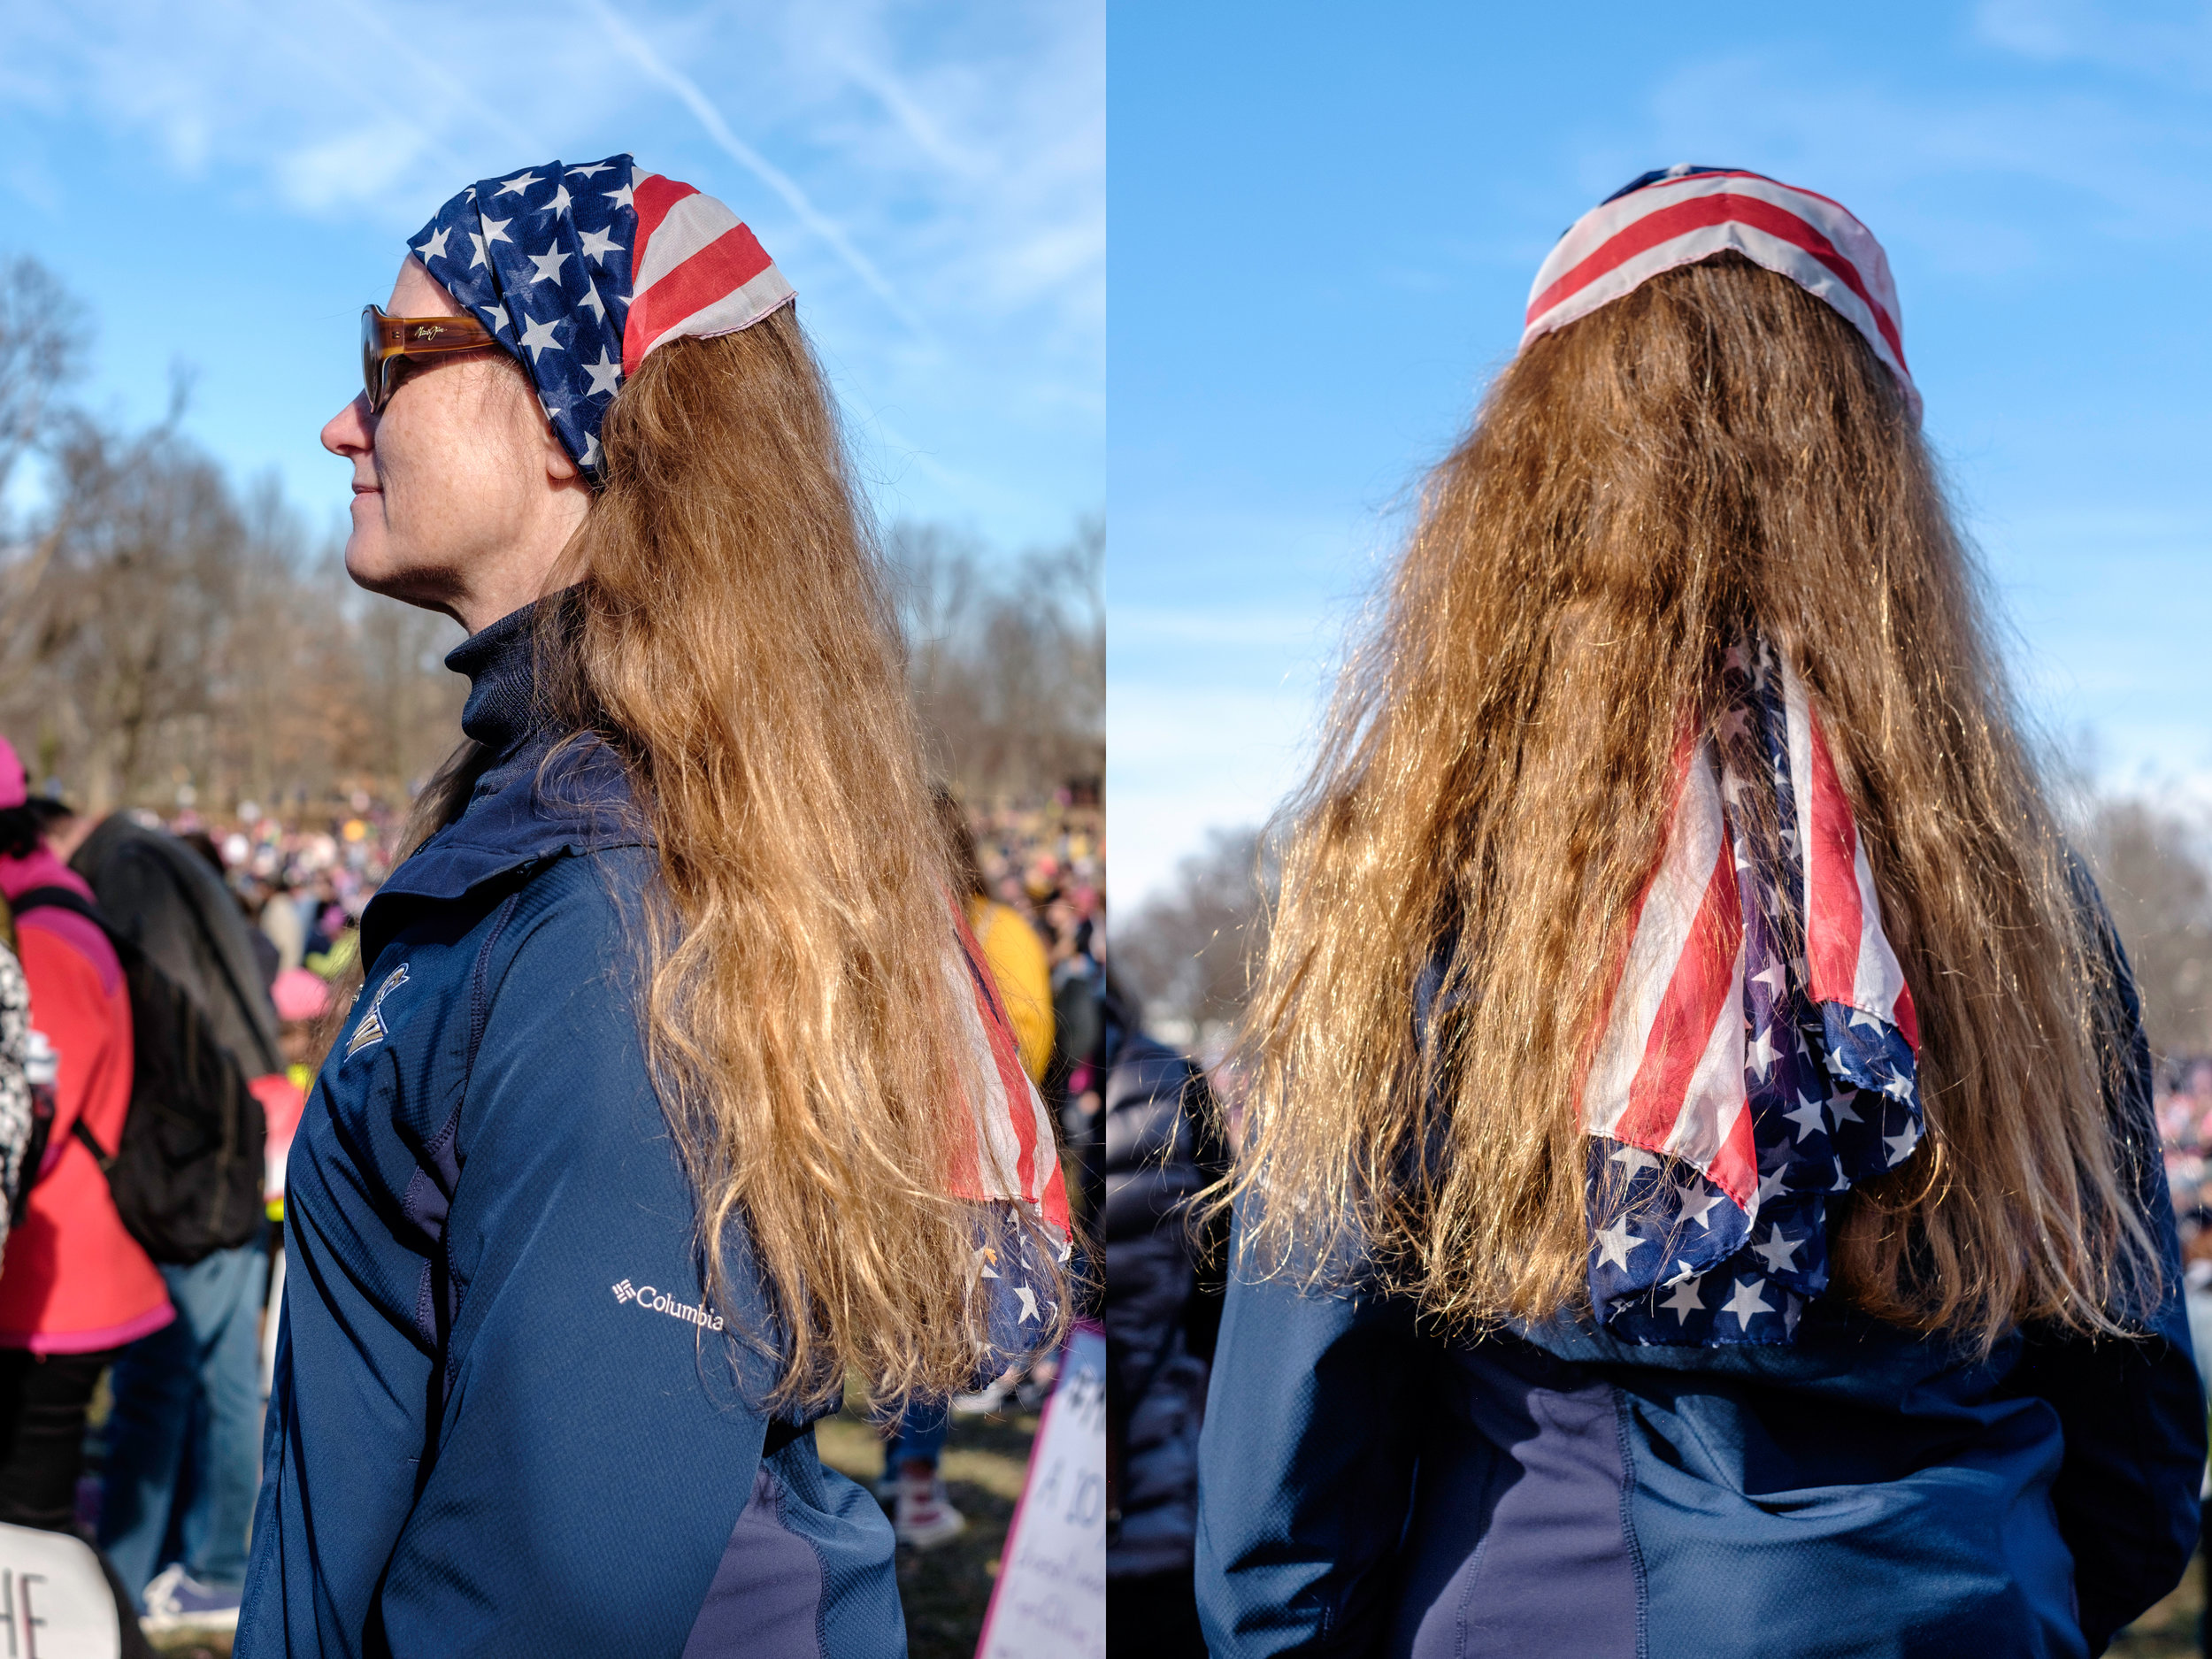 """Jennifer Brinkerhoff from Maryland is seen at the anniversary of the Women's March on Saturday, January 20, 2018 in Washington, DC. She had this to share about why she was in attendance at the march, """"I'm here today because this is such an important time in the history of our country, not just for women's rights but for all rights. I'm wearing a scarf of the American flag that I got handed last year at this march. And I'm wearing it because now more than ever we also need to be proud of our country, and to be proud that we are able to do what we are doing here today. So in solidarity with those 'shit-hole' countries, we have rights, we need to exercise them and we need to embrace everyone."""""""